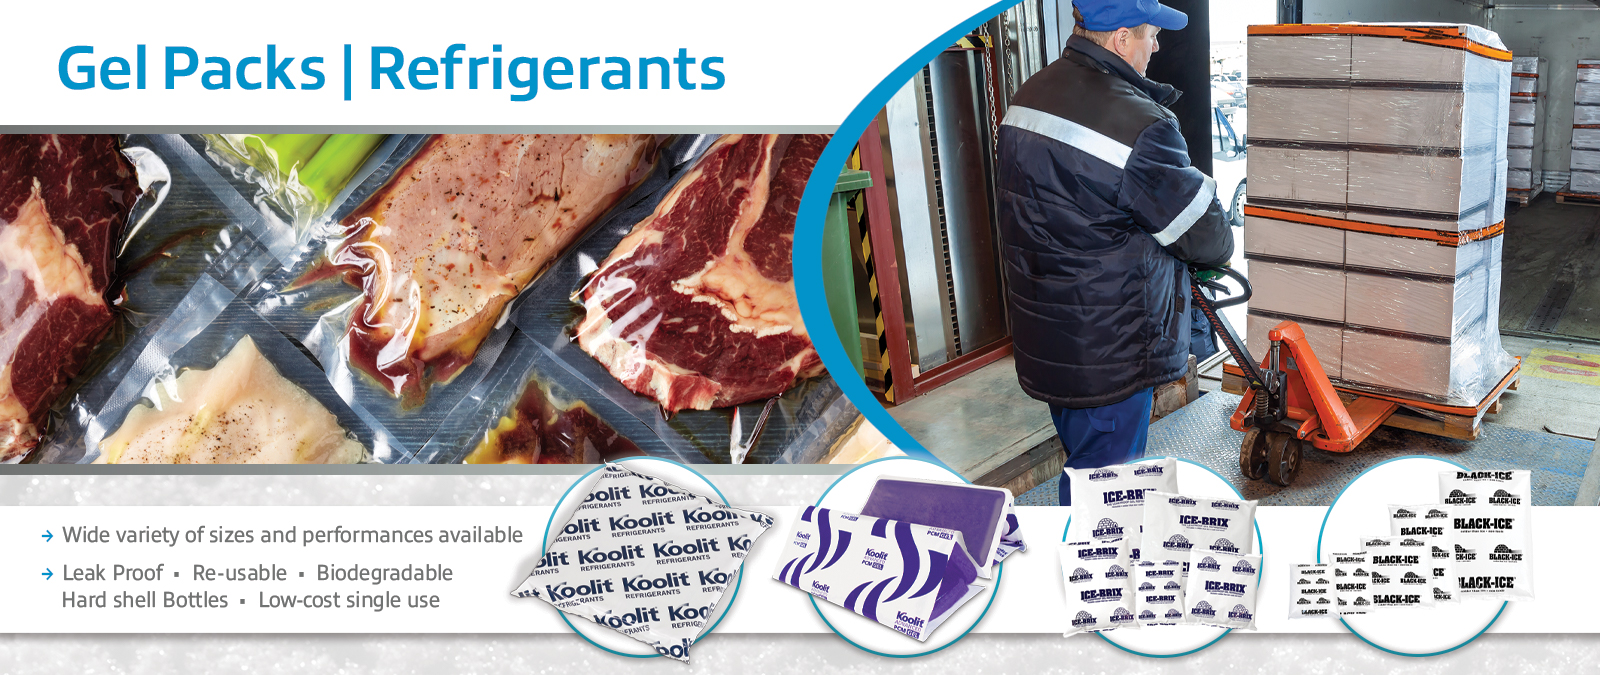 Gel Packs and Refrigerant Bricks